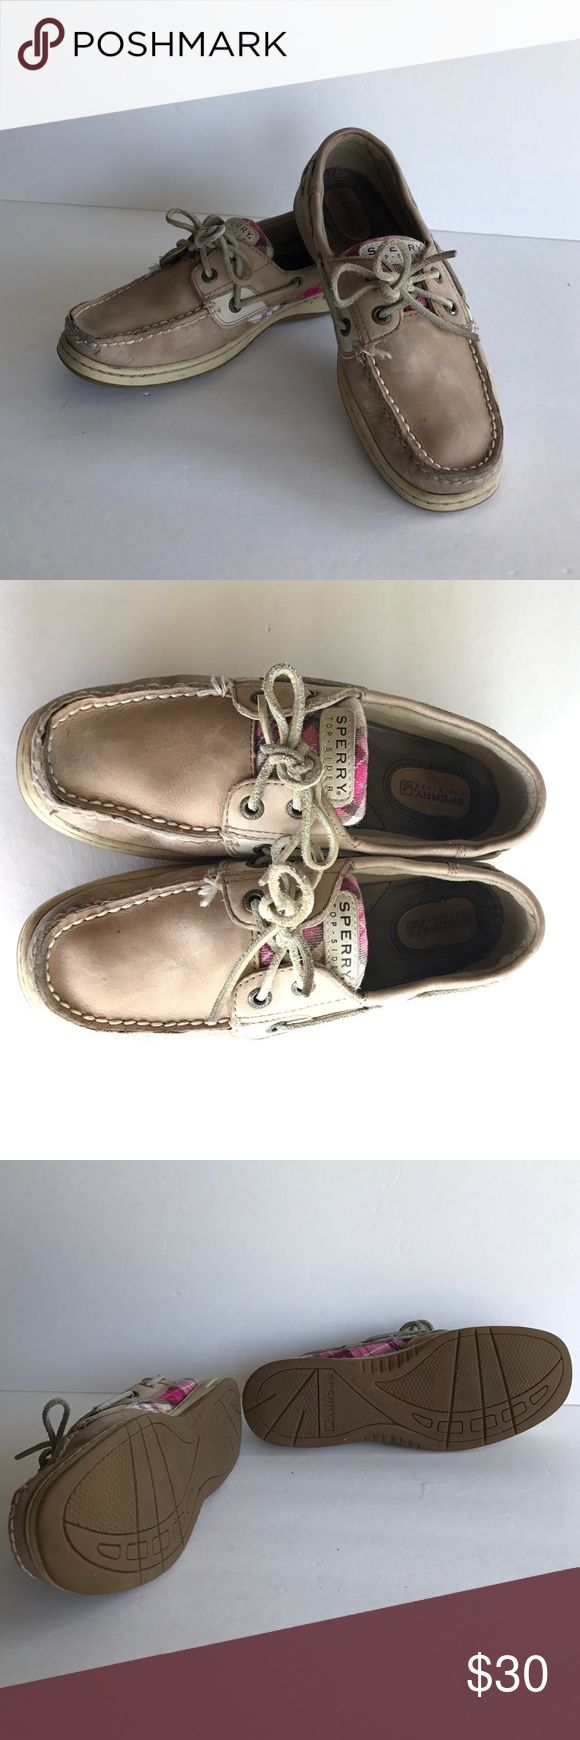 Women's Sperry Top Sider Boat Shoes Women's Sperry Top Sider Boat Shoes, Size 6 1/2, Genuine Leather, soles in great shape! Smoke free home Sperry Top-Sider Shoes Flats & Loafers